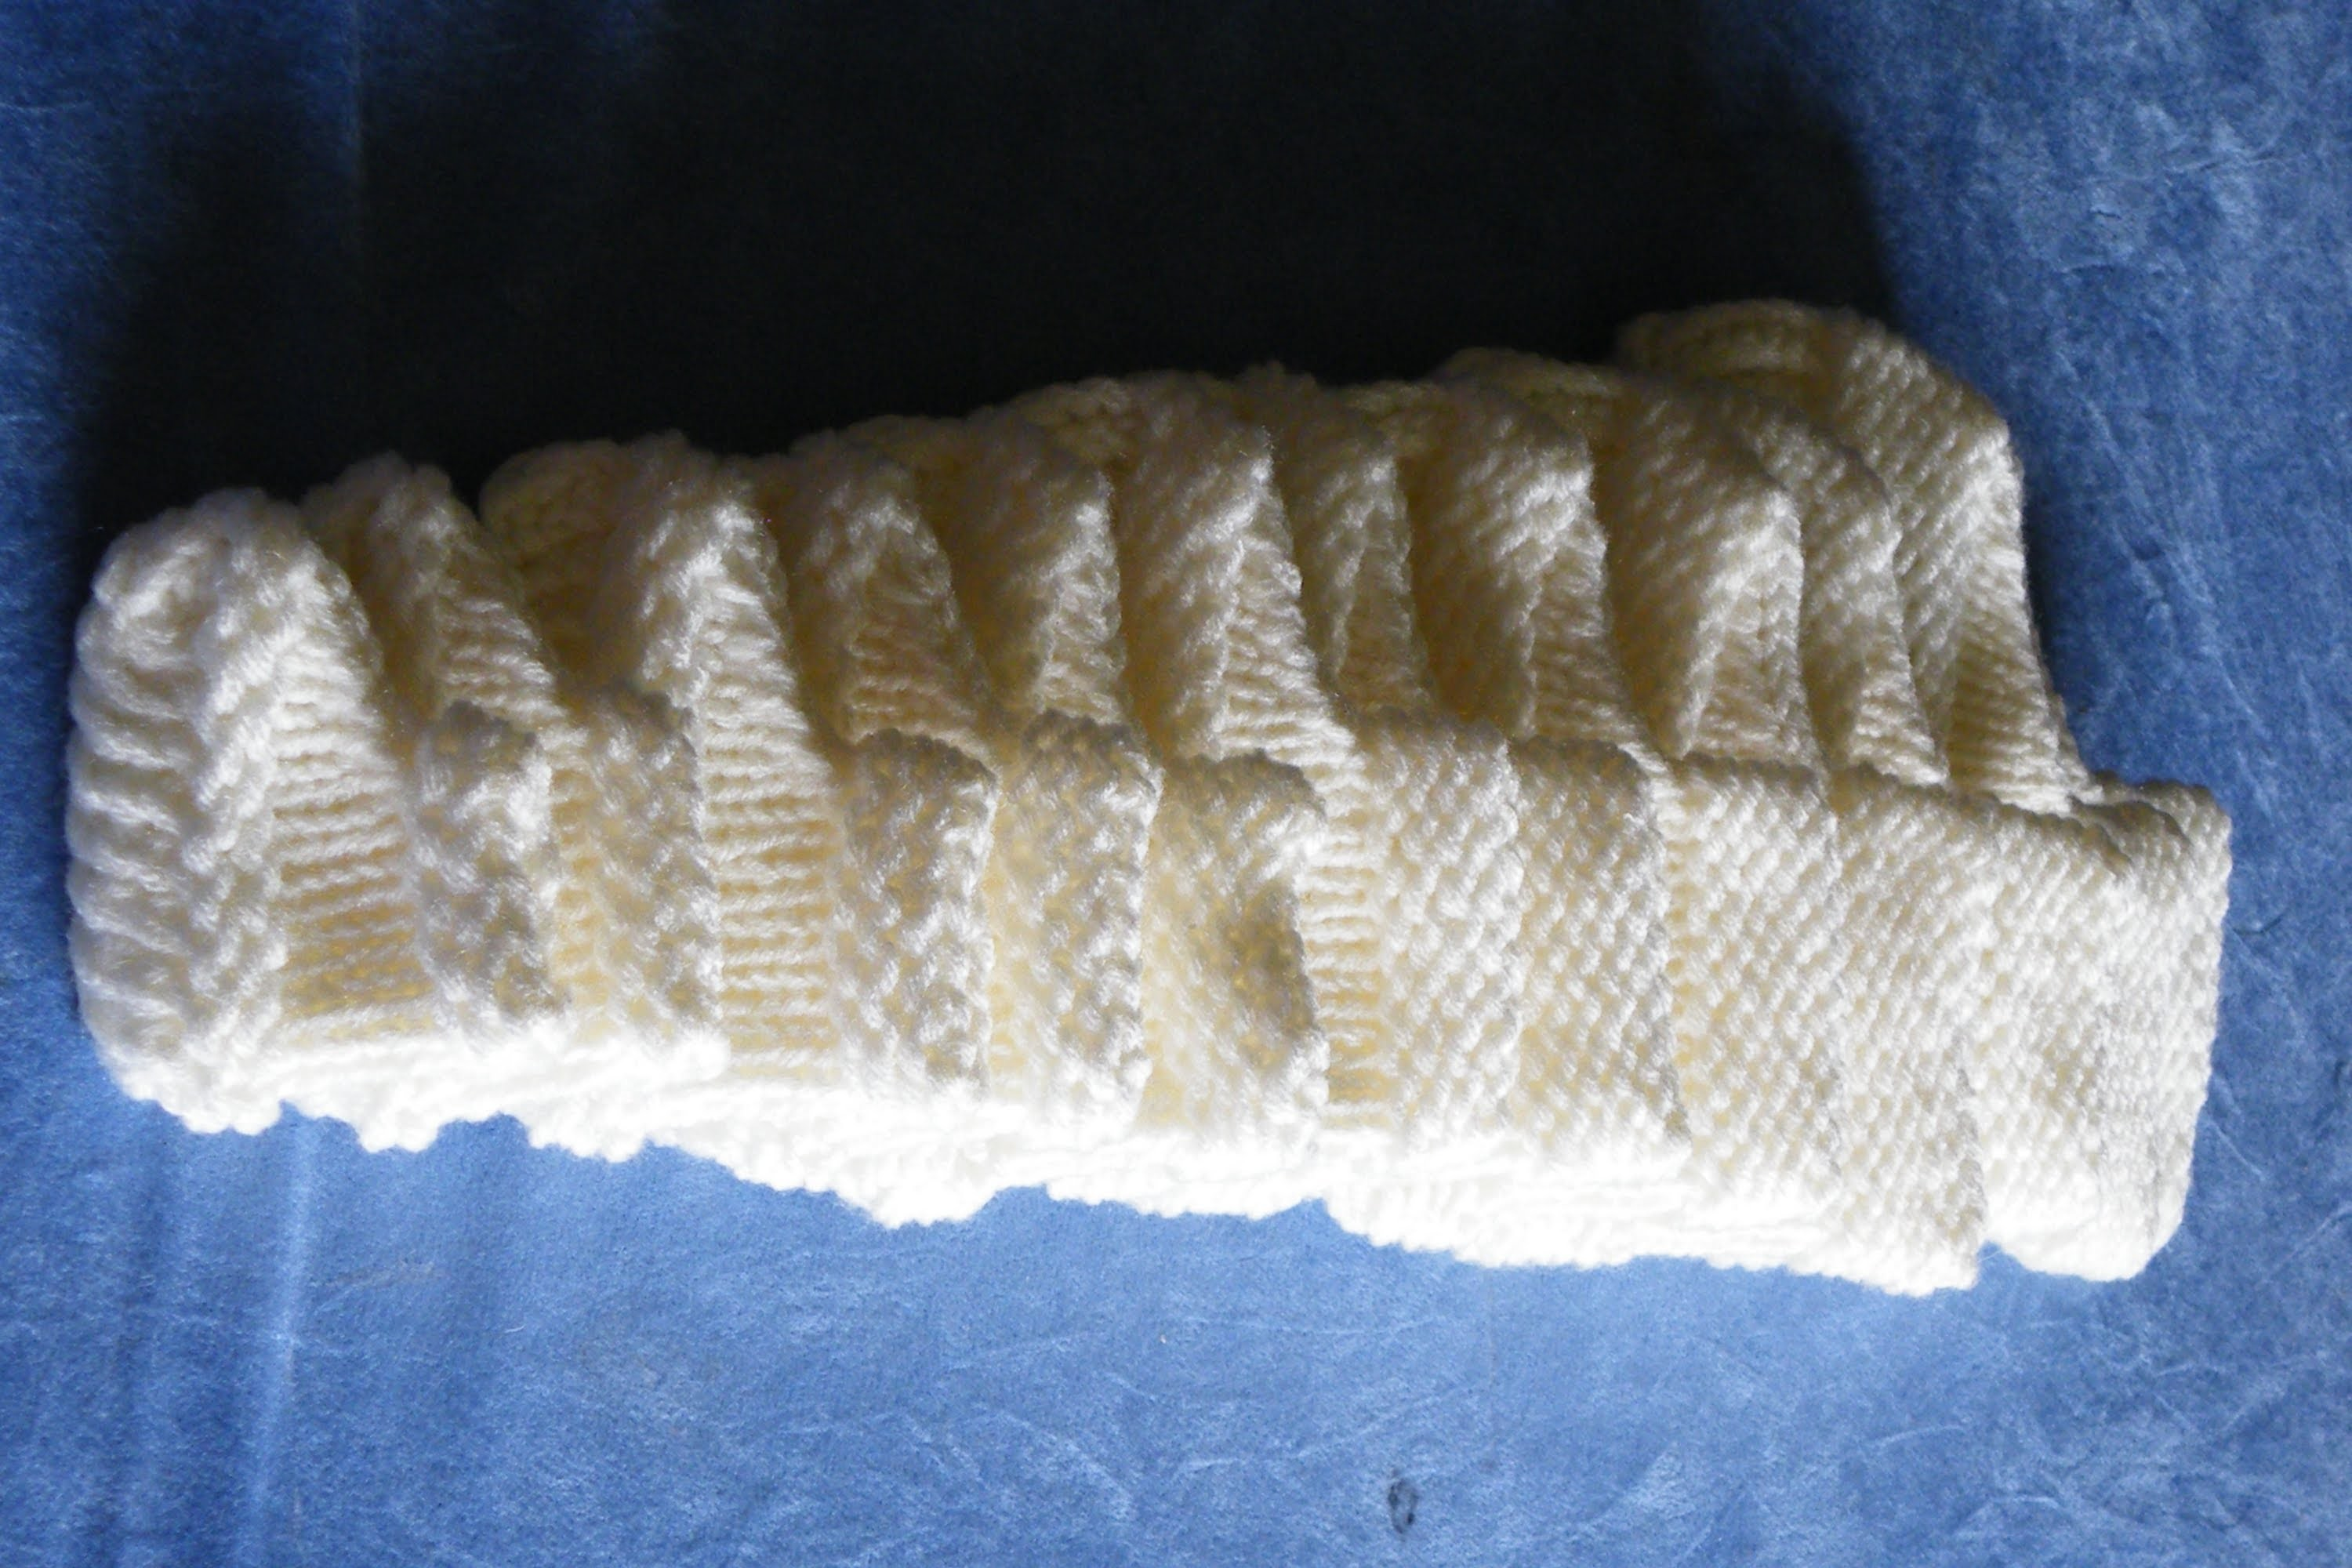 How to loom knit booties from newborn size to adult basic pattern (long looms)